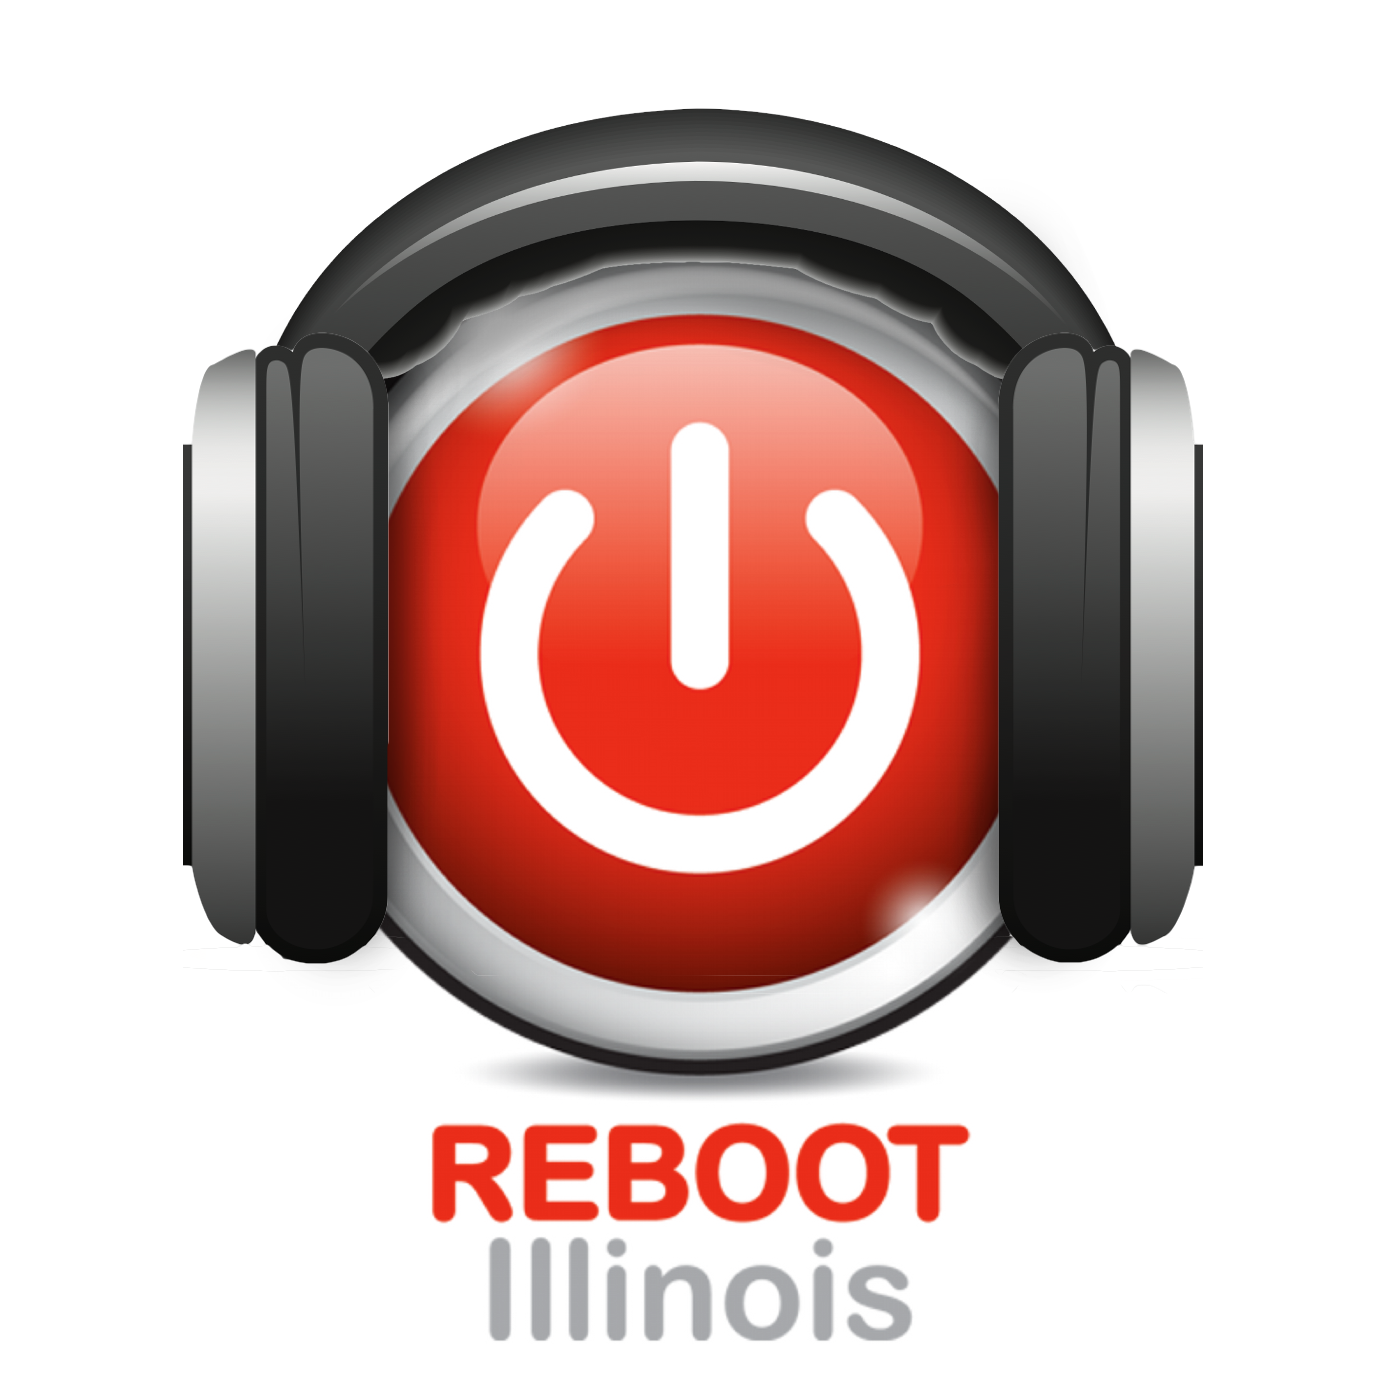 Reboot Illinois: Only in Illinois - 04/5/13 - Episode 3